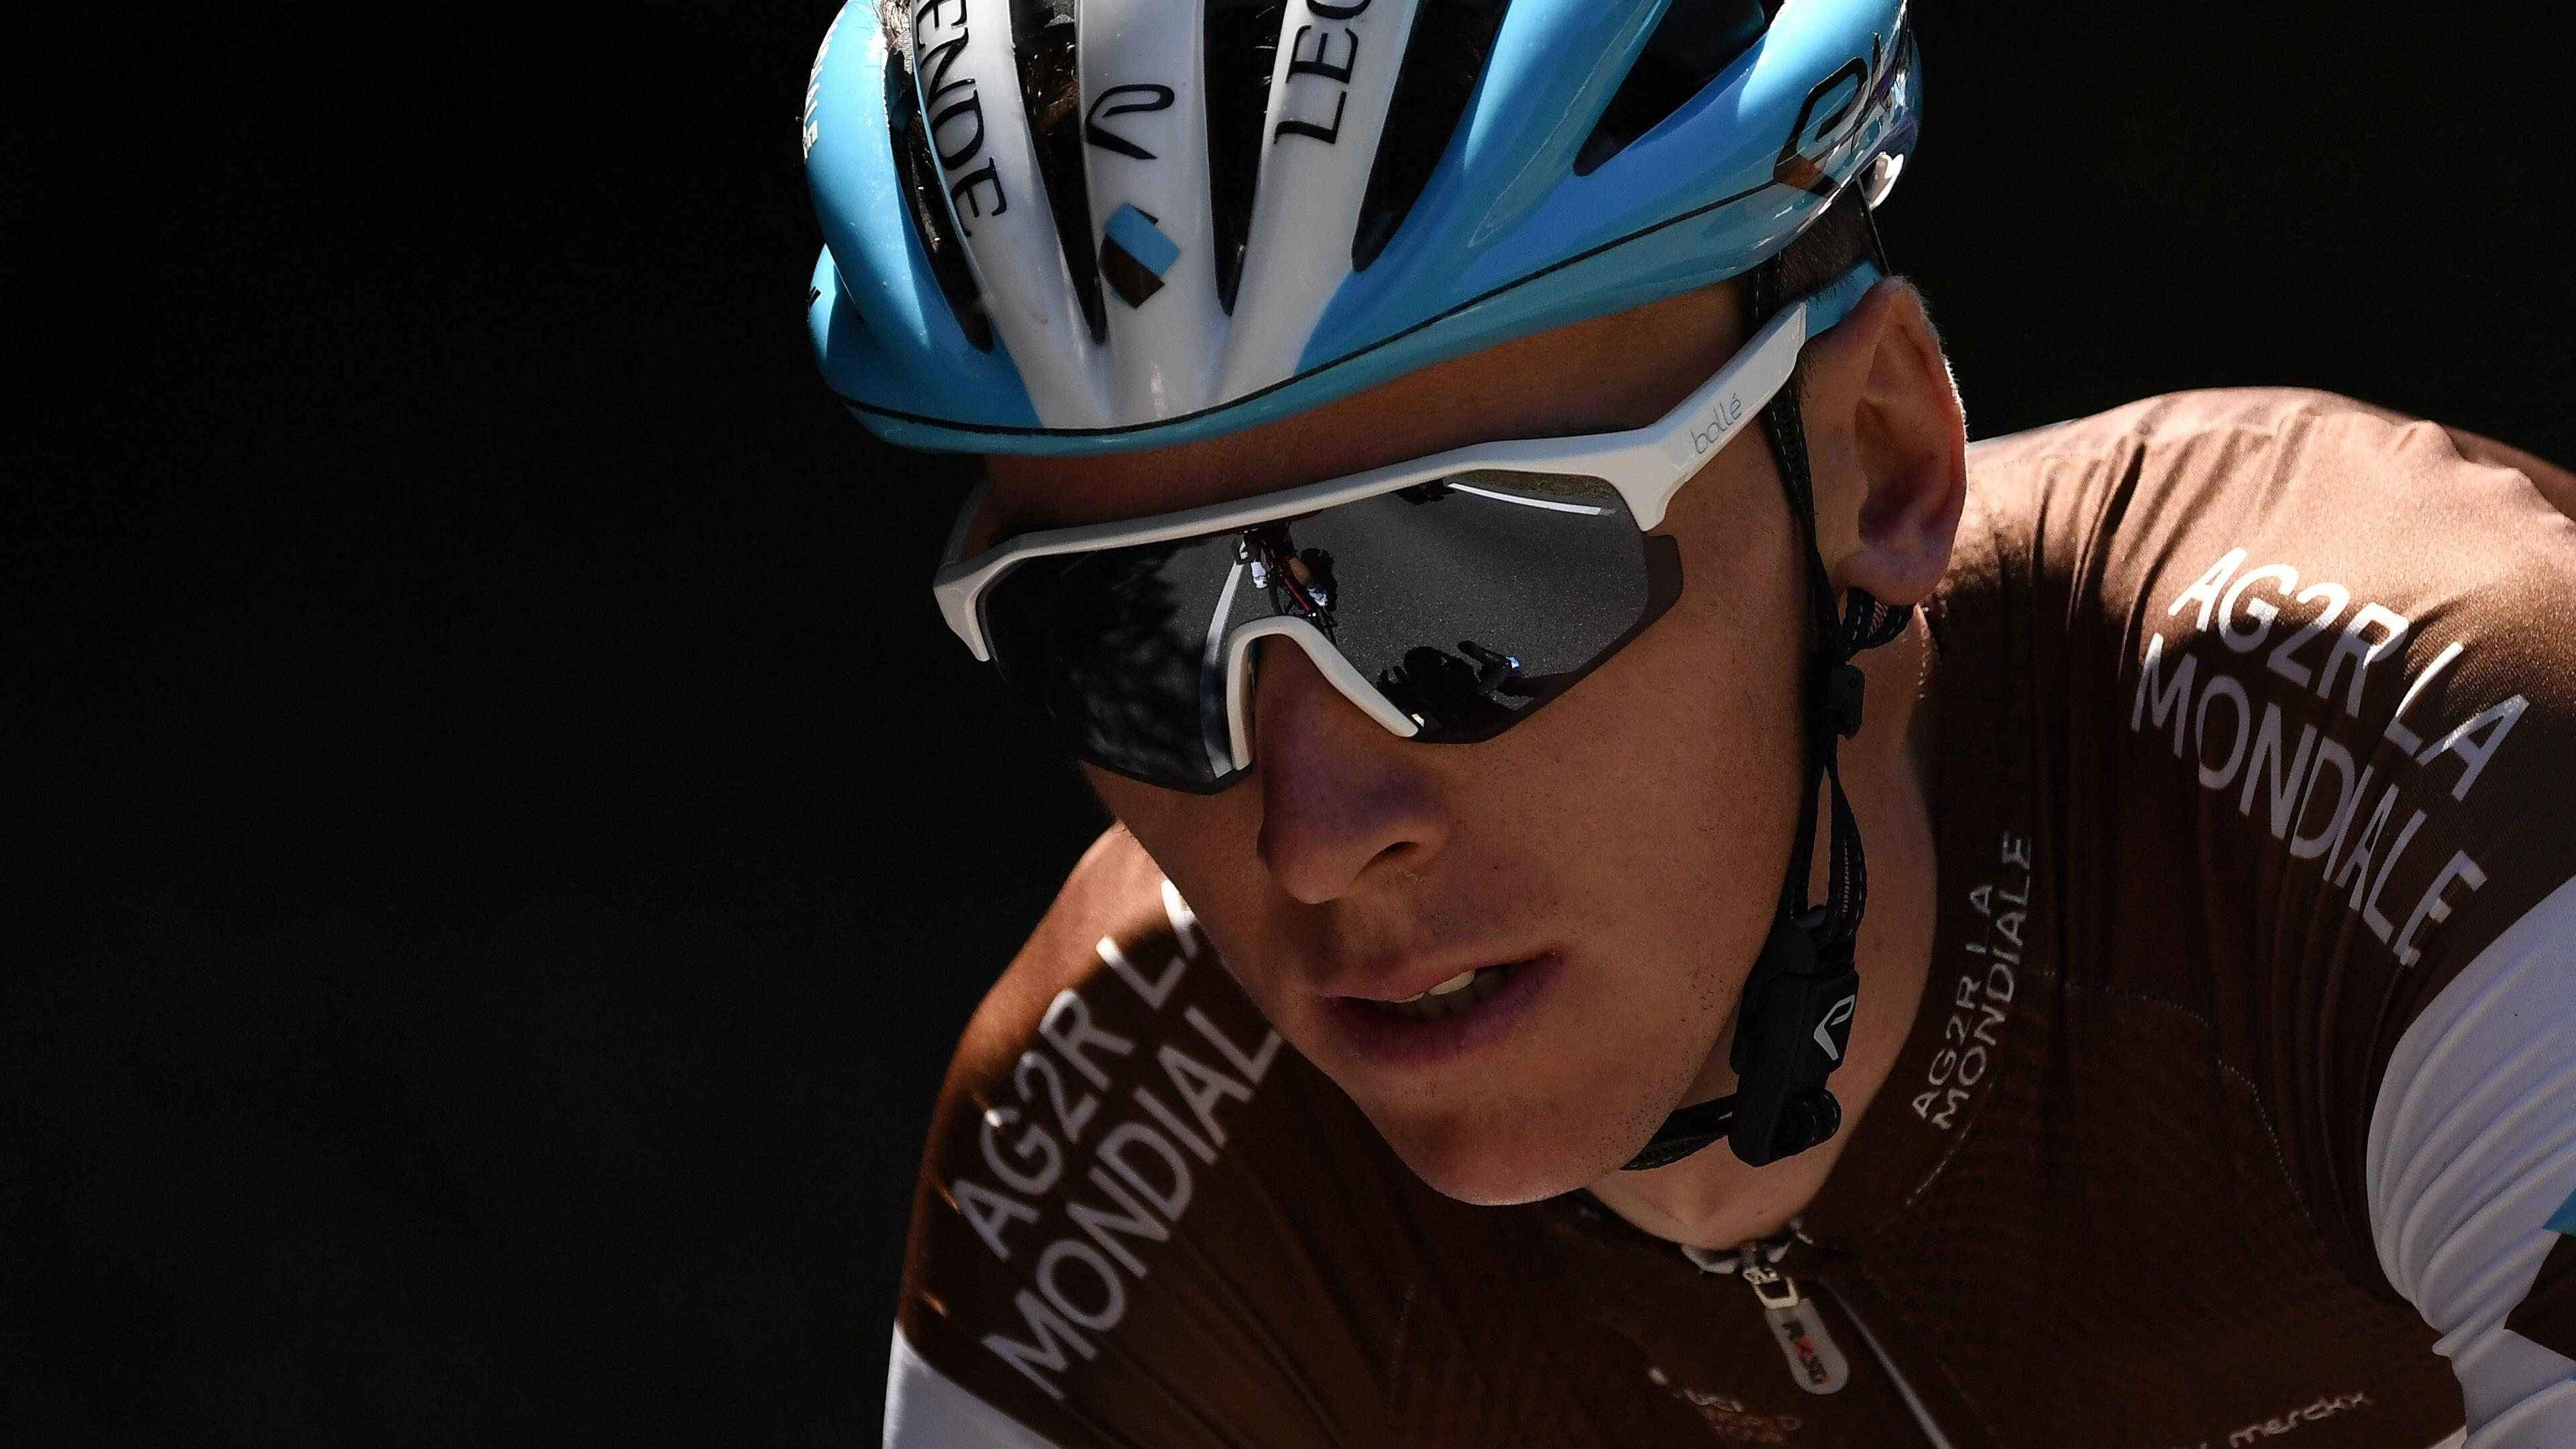 Tour de france stage 9 betting preview on betfair mnf betting preview goal